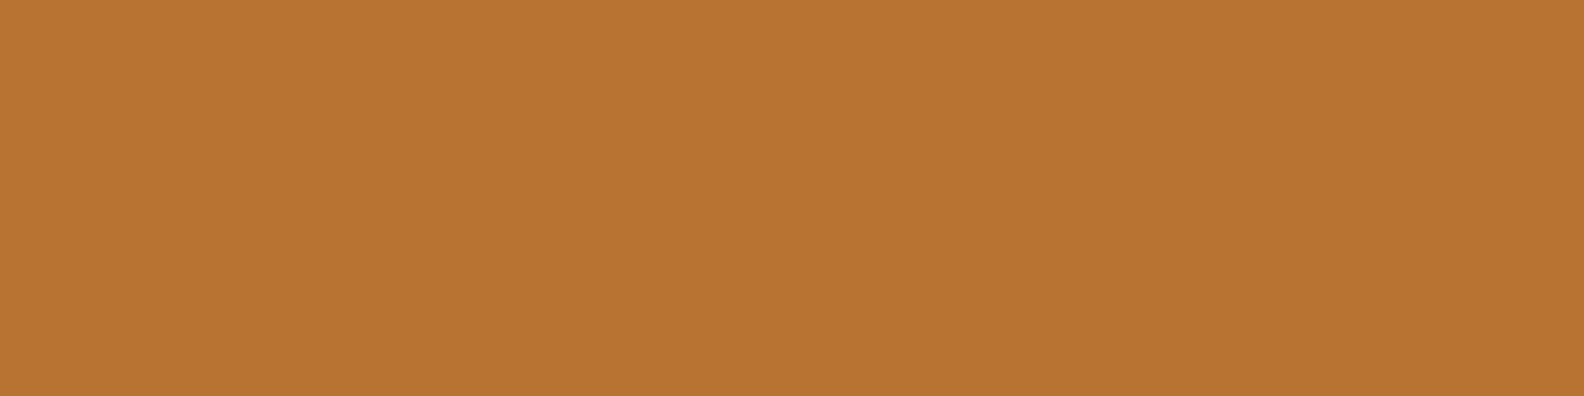 1584x396 Copper Solid Color Background